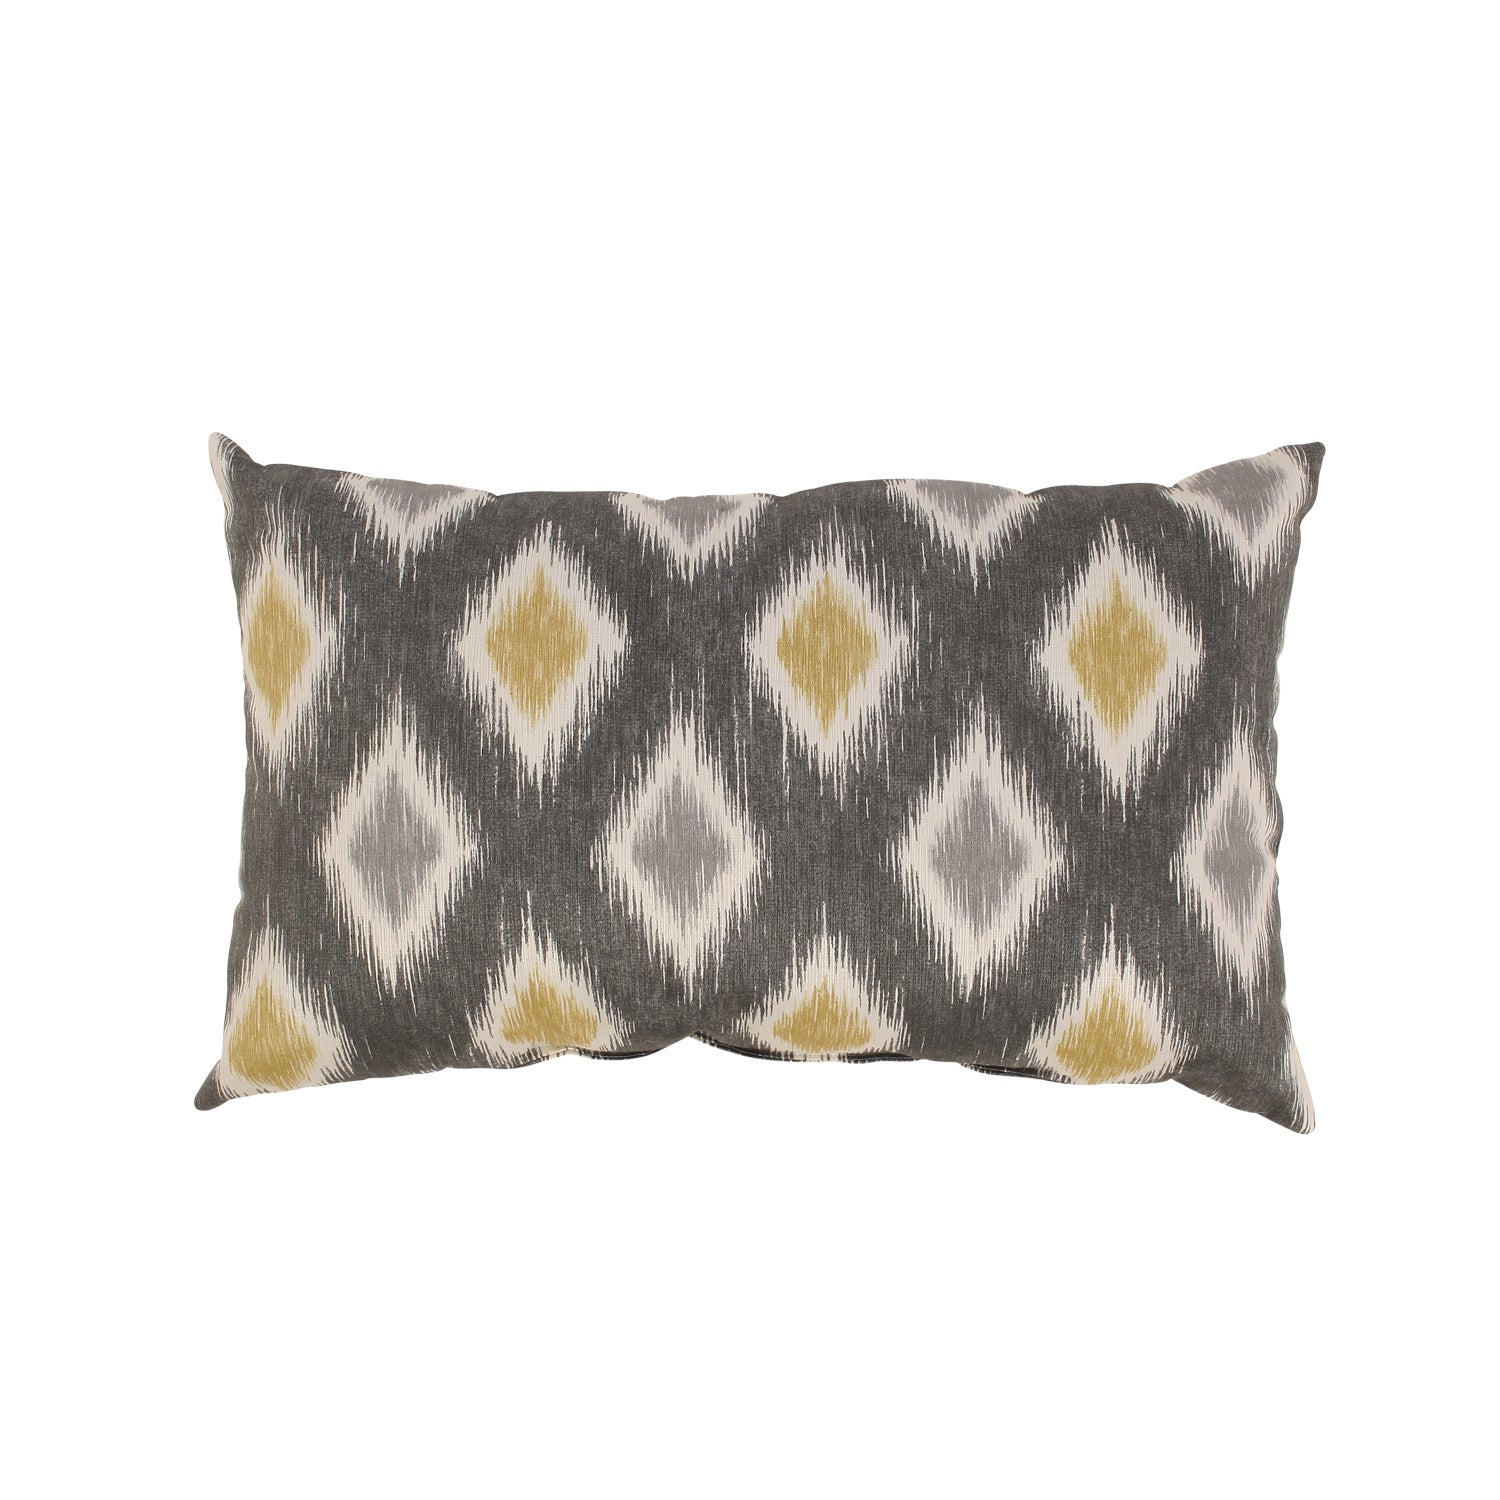 Geometric Rectangle Throw Pillows